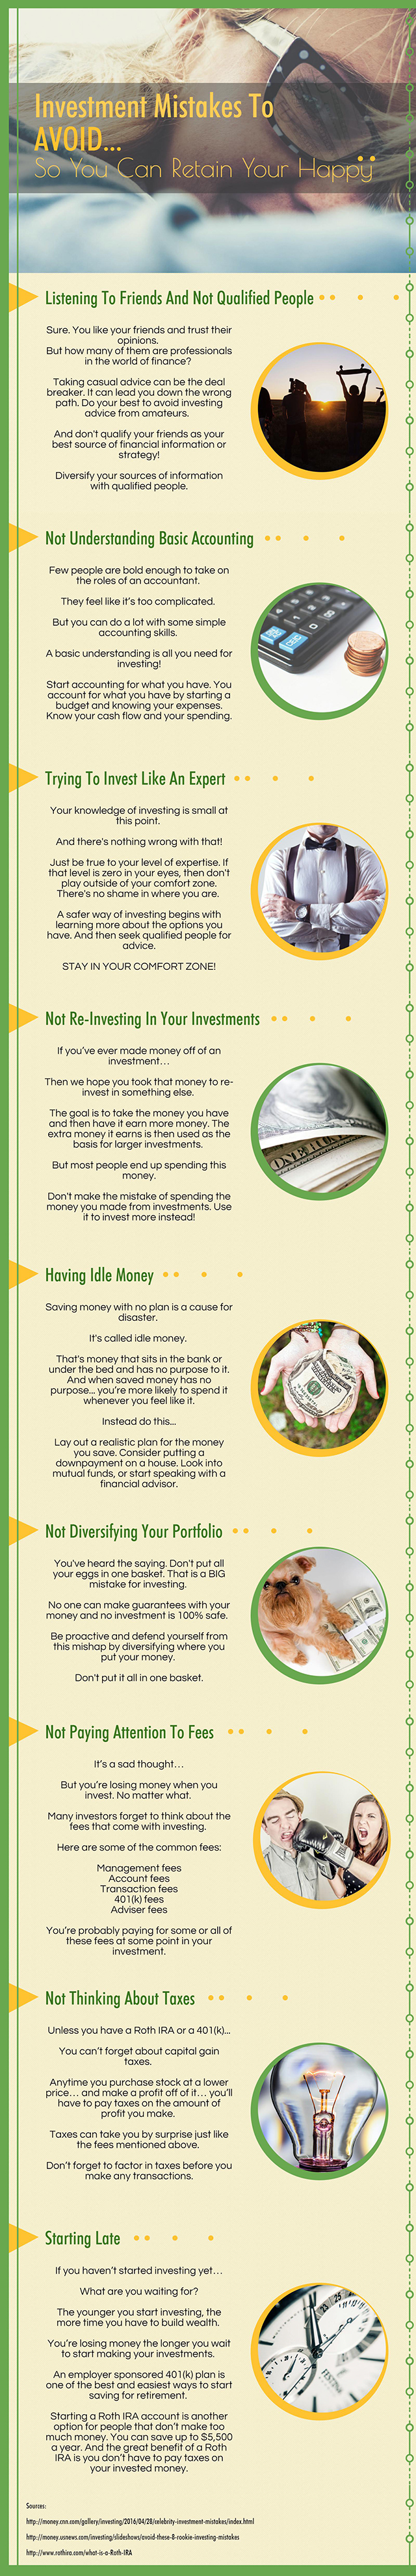 Investment Mistakes To Avoid-Infographic